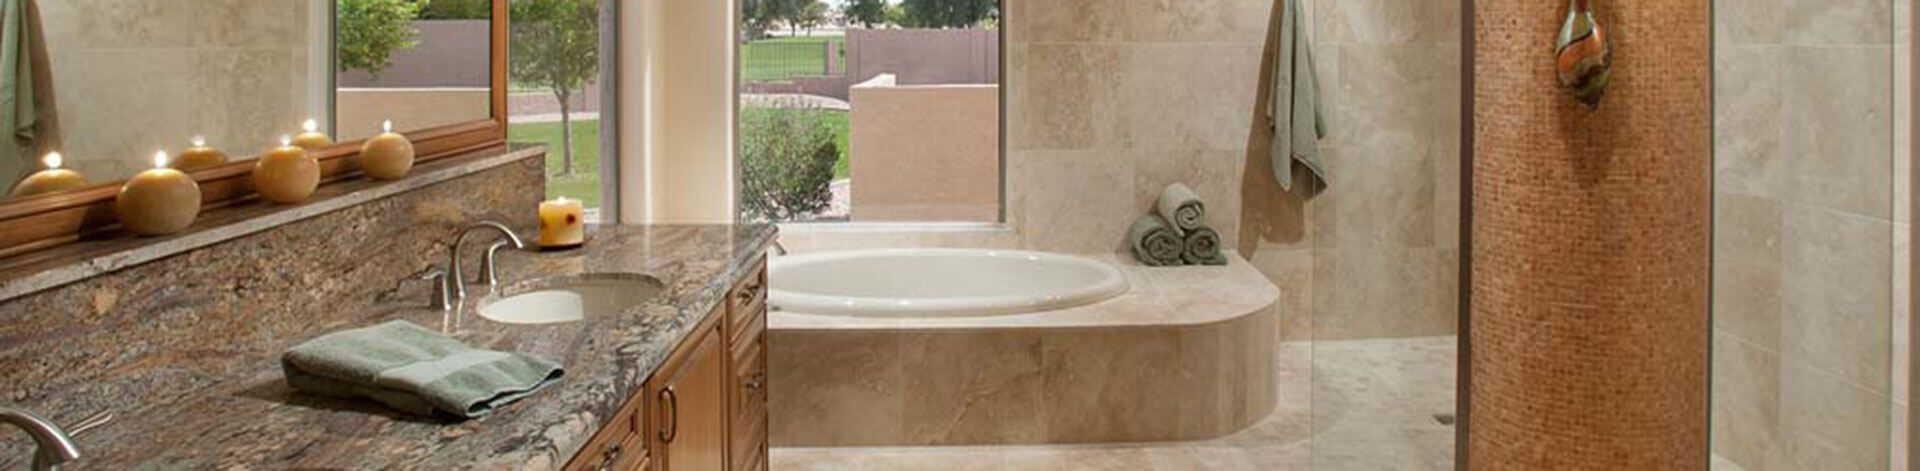 Bathroom Remodeling In Phoenix Scottsdale Republic West Remodeling - Bathroom renovation videos